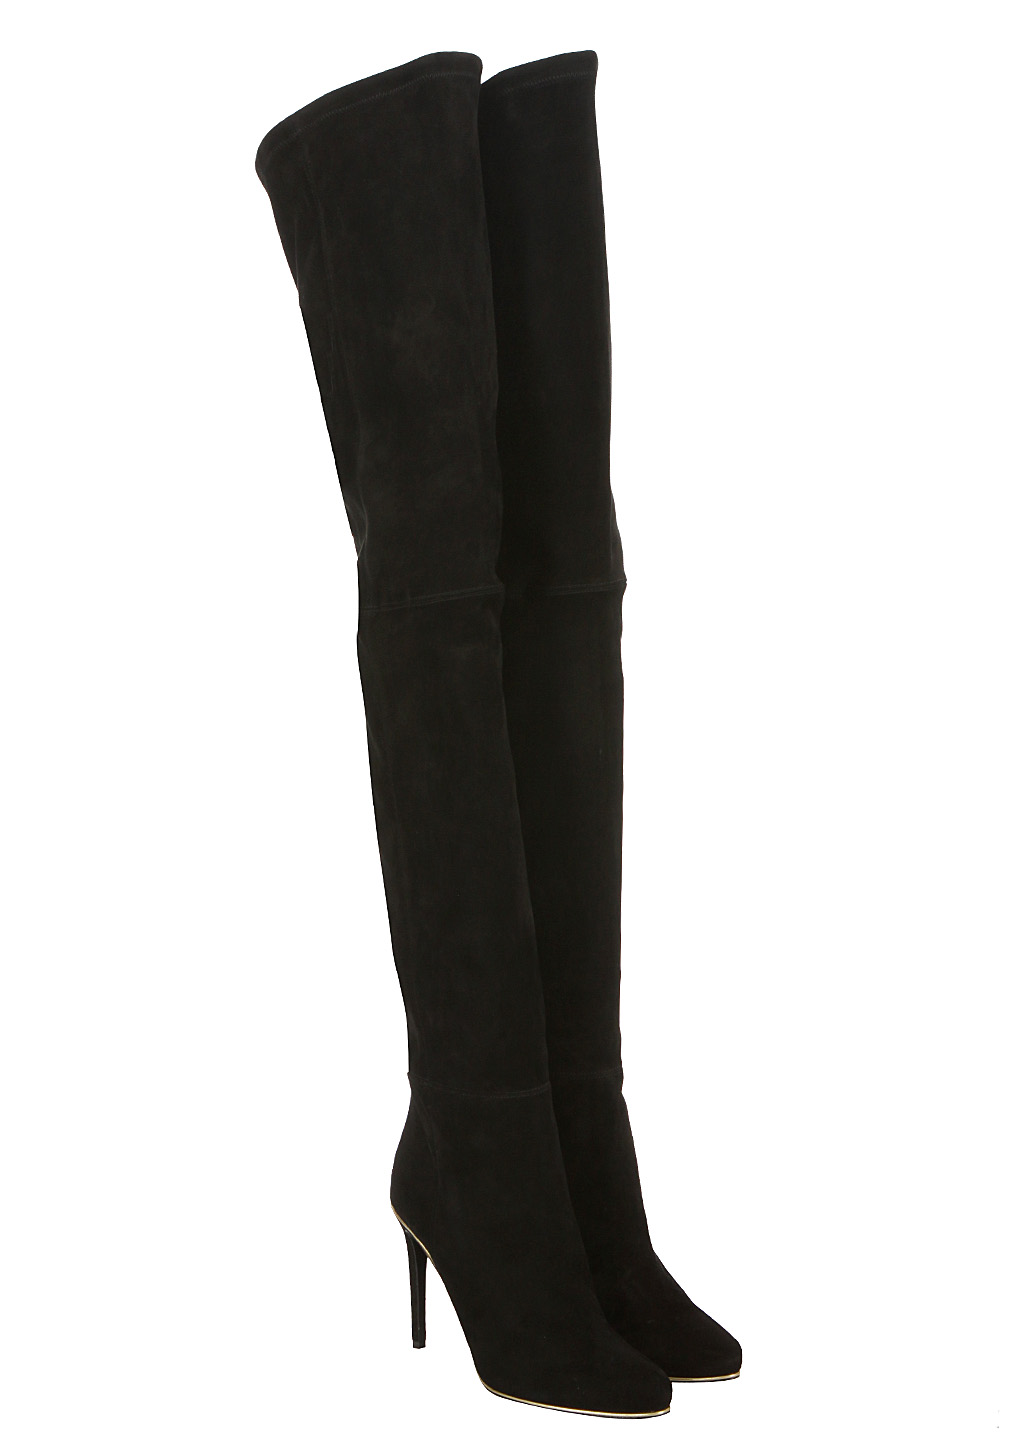 balmain black suede thigh boots in black lyst